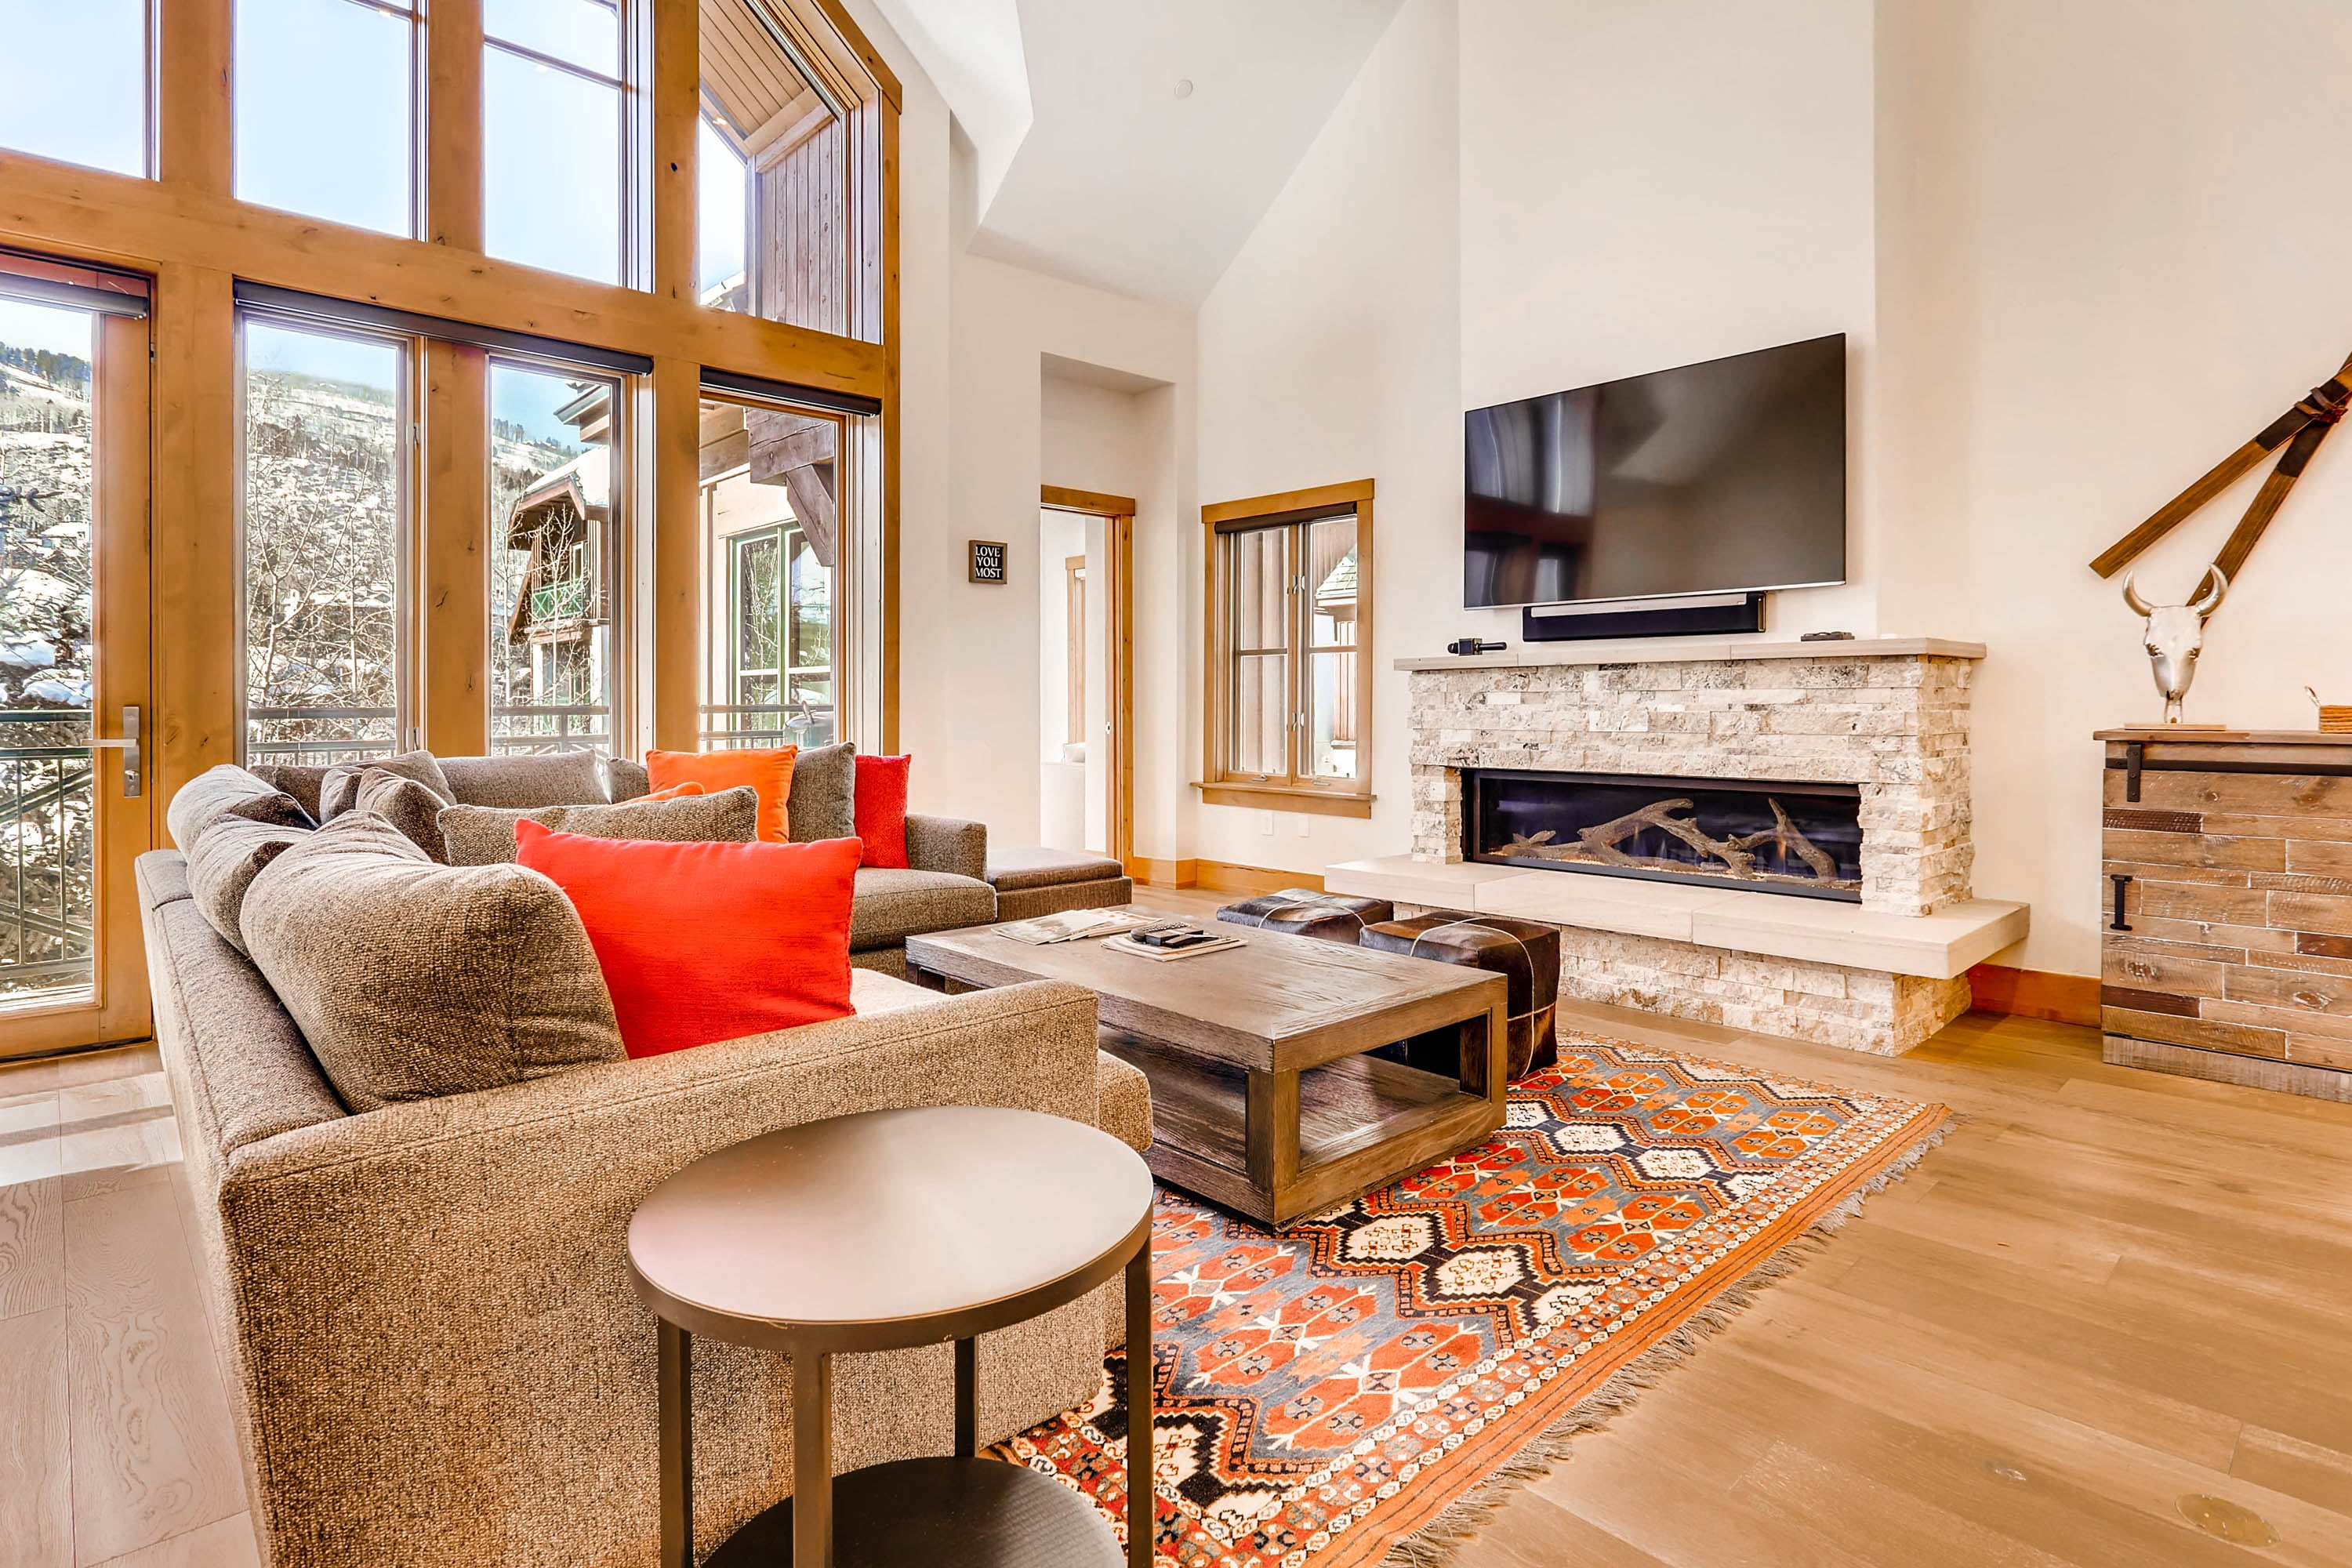 Property Image 2 - Contemporary Townhome in Beaver Creek with Patio